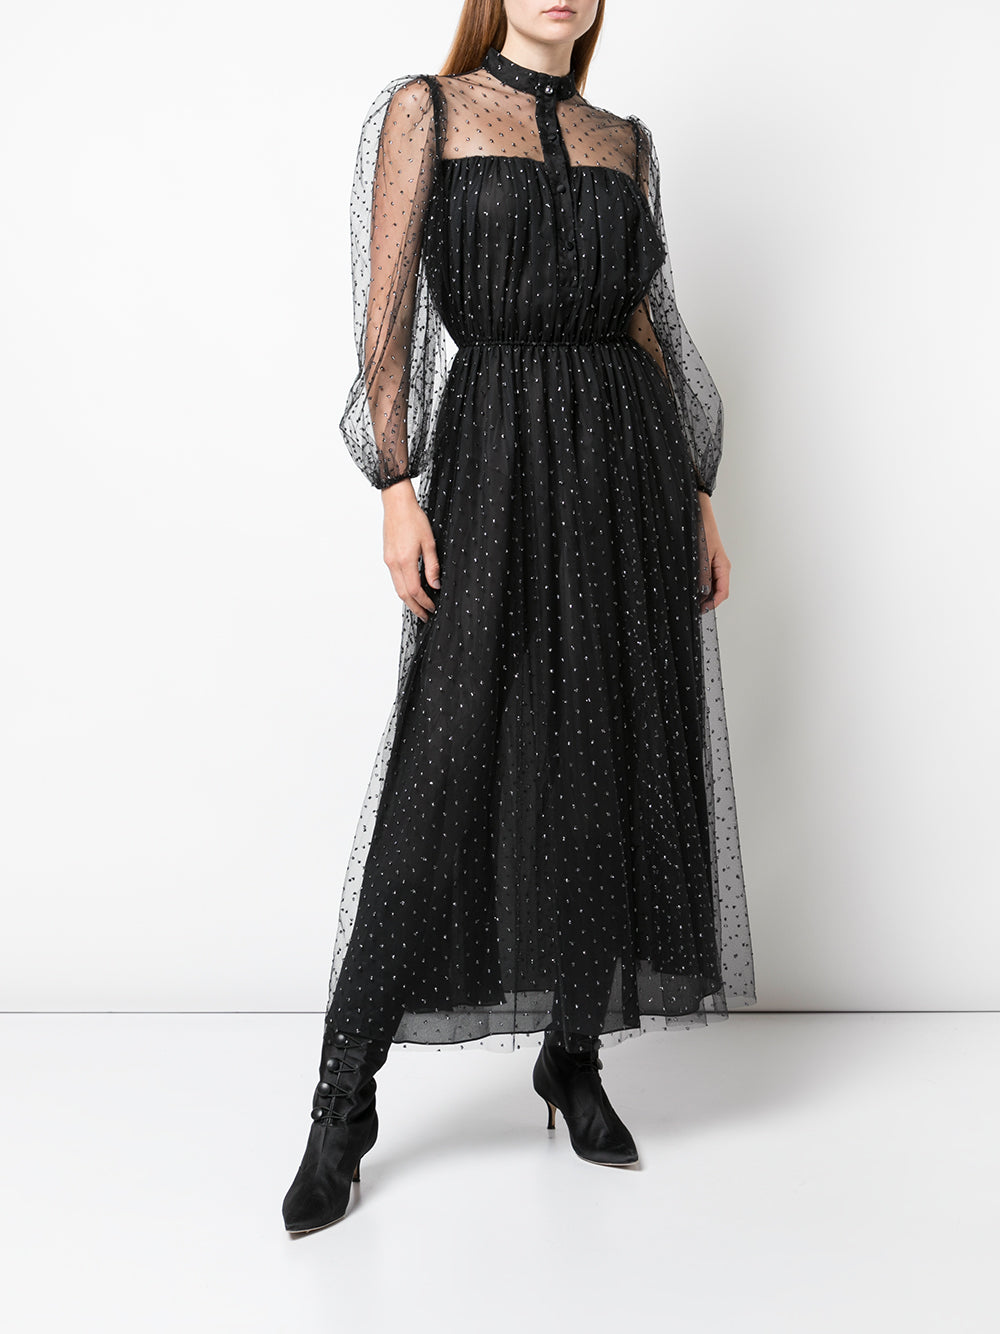 LONG SLEEVE DRESS IN POINT DESPRIT